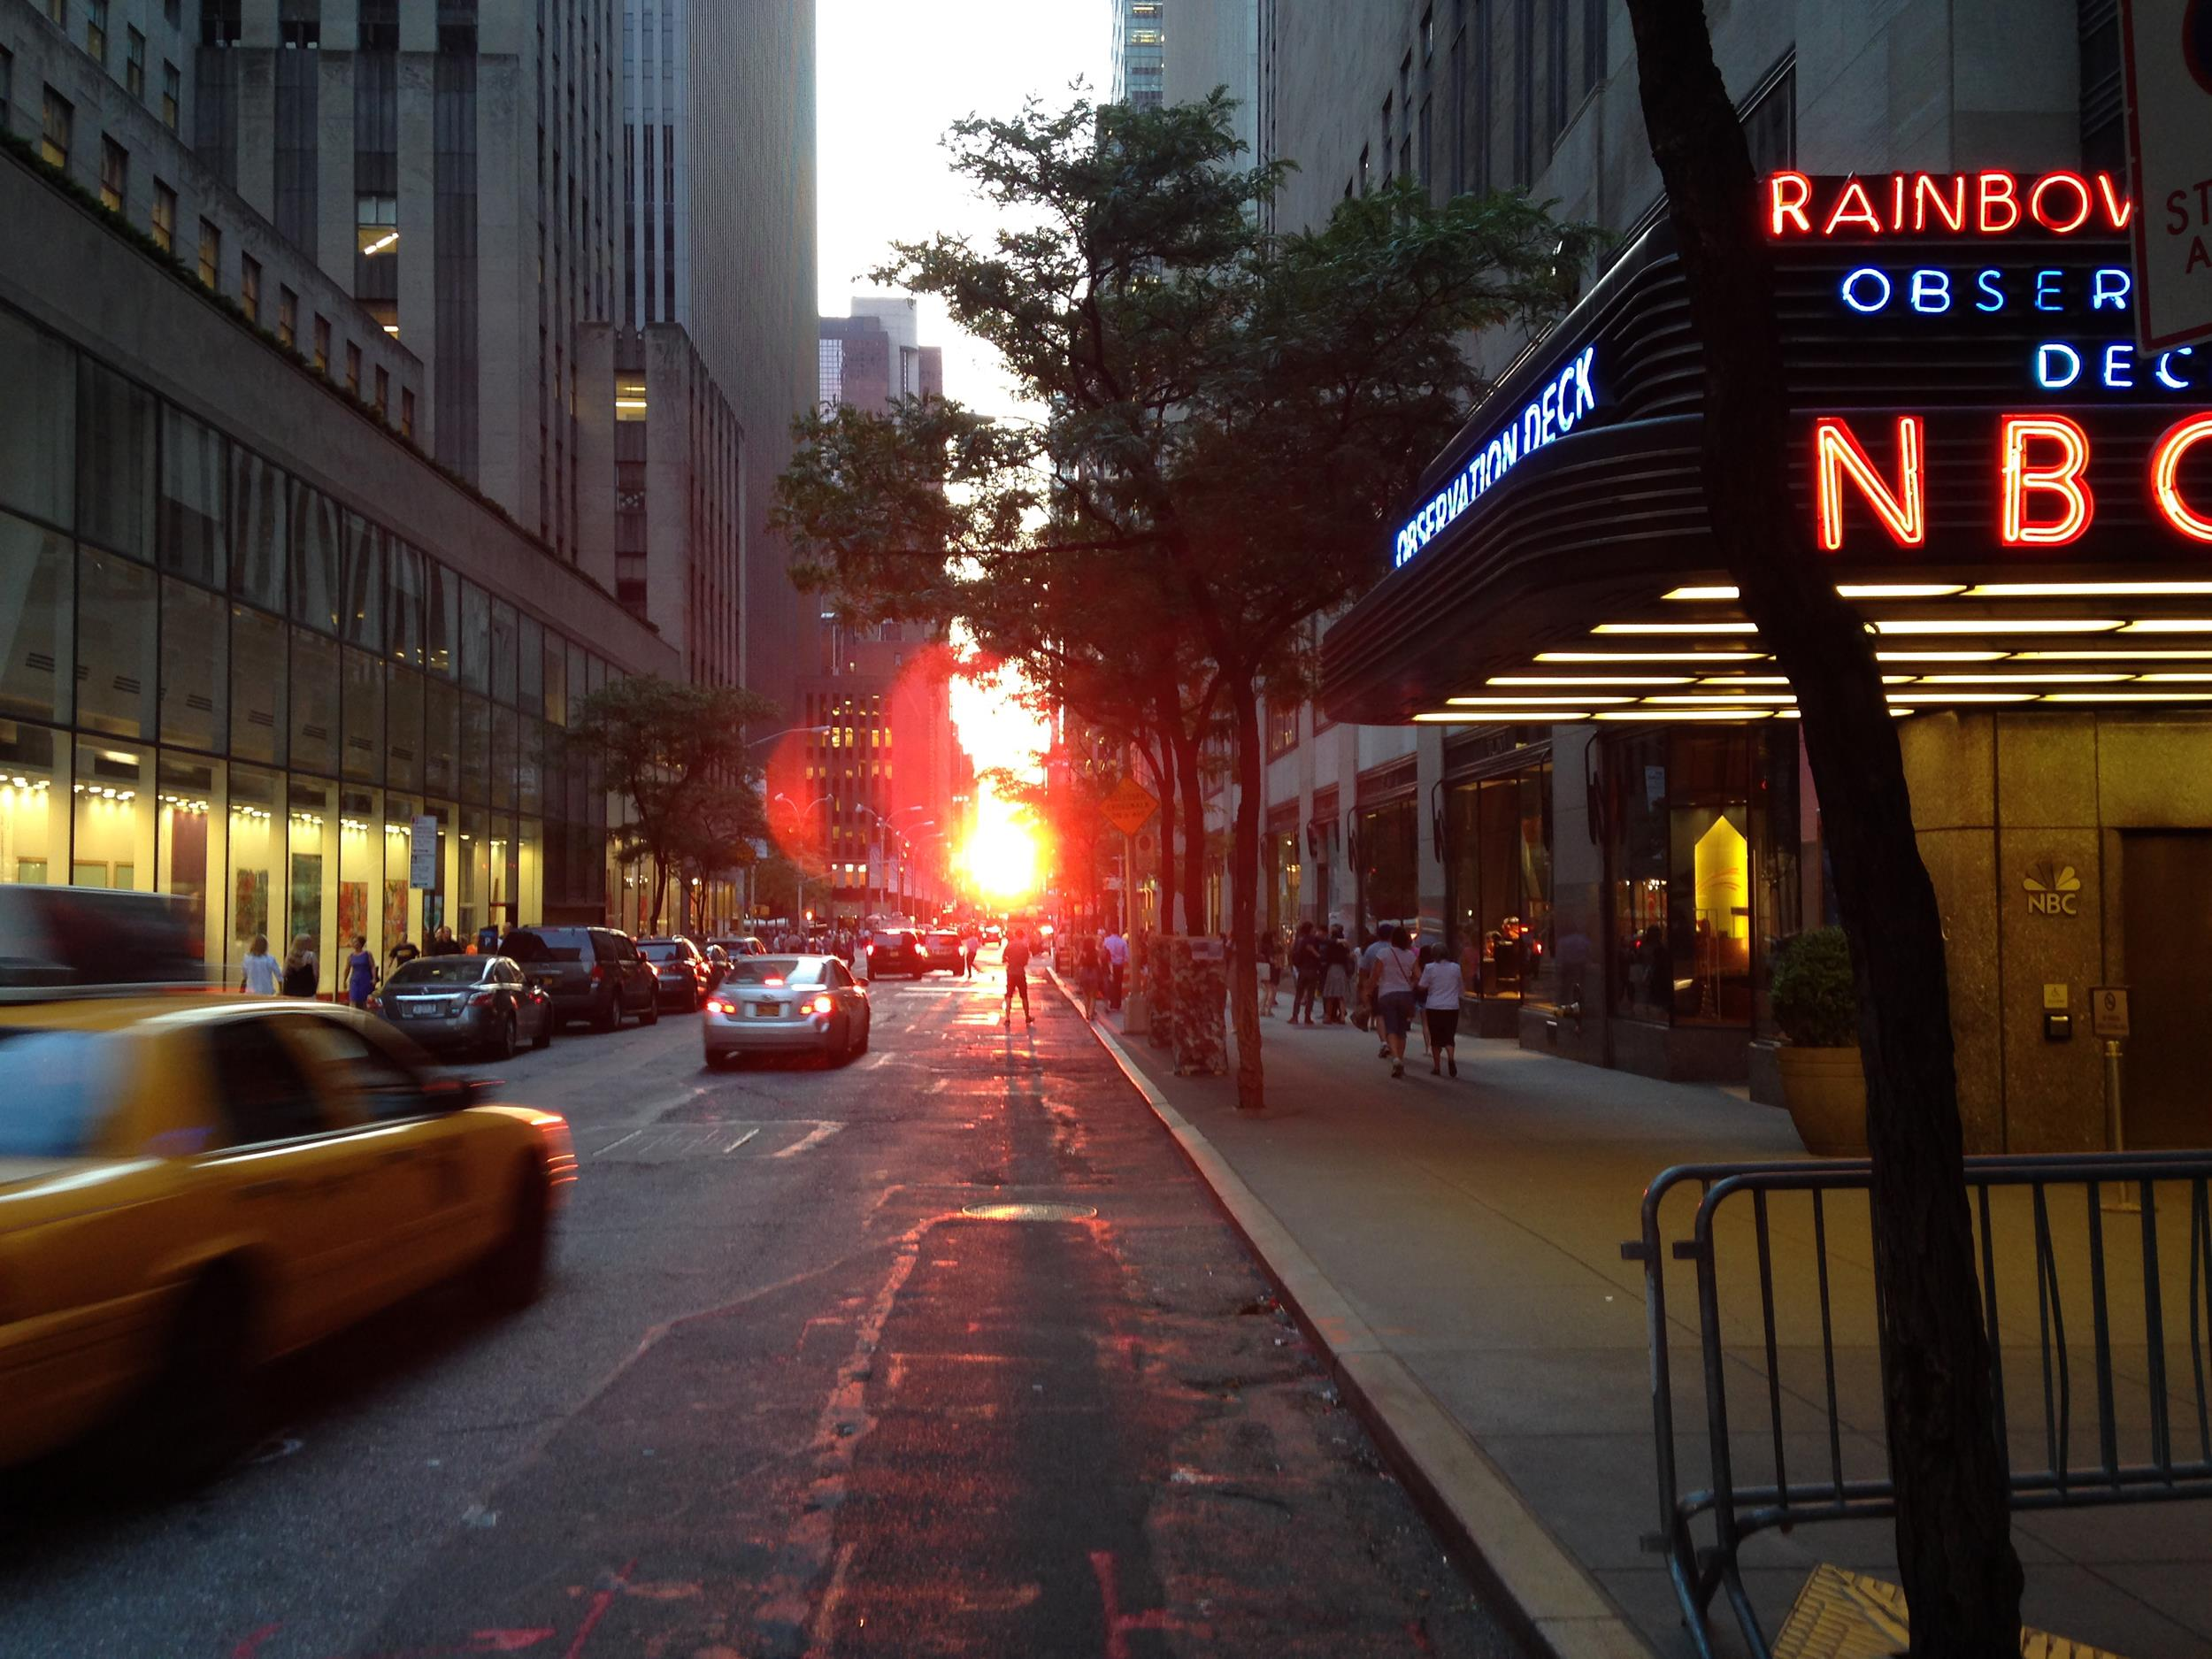 Images: The view of Manhattenhenge from outside 30 Rockefeller Plaza